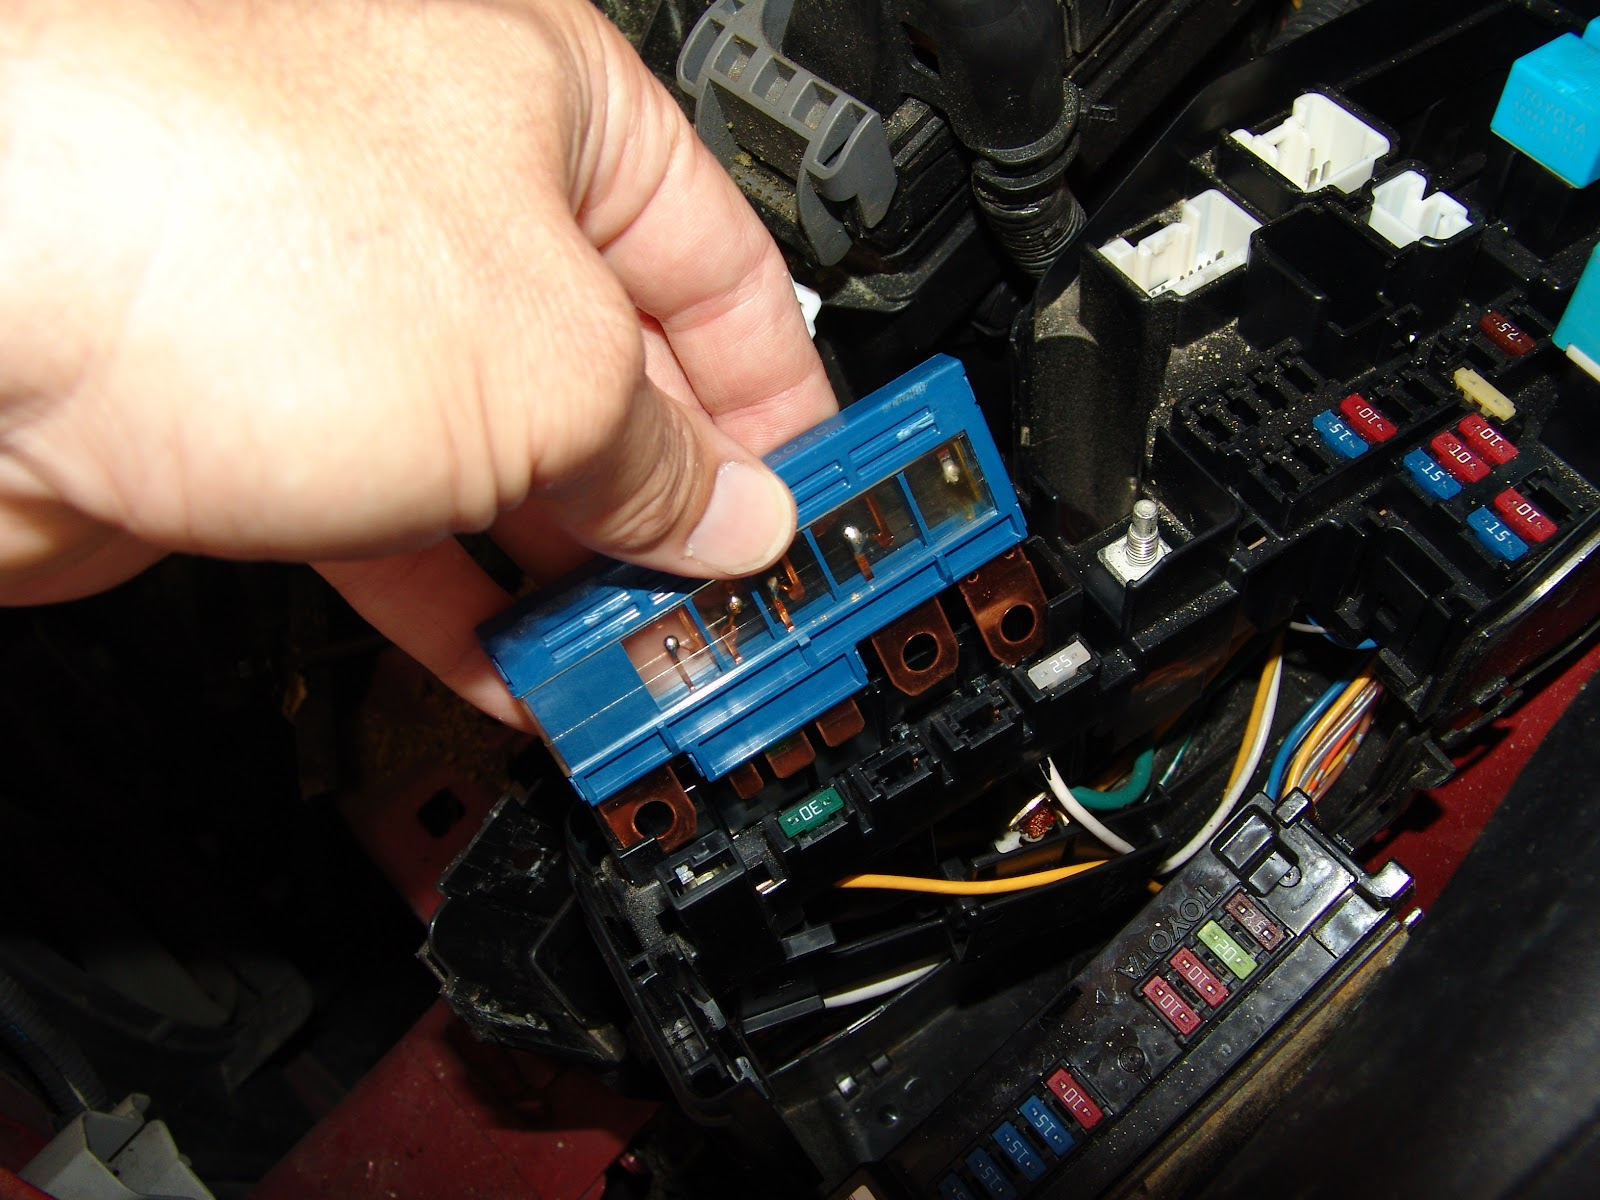 Toyota Fuse Box 120 Great Design Of Wiring Diagram 08 Yaris Highlander Get Free Image About Land